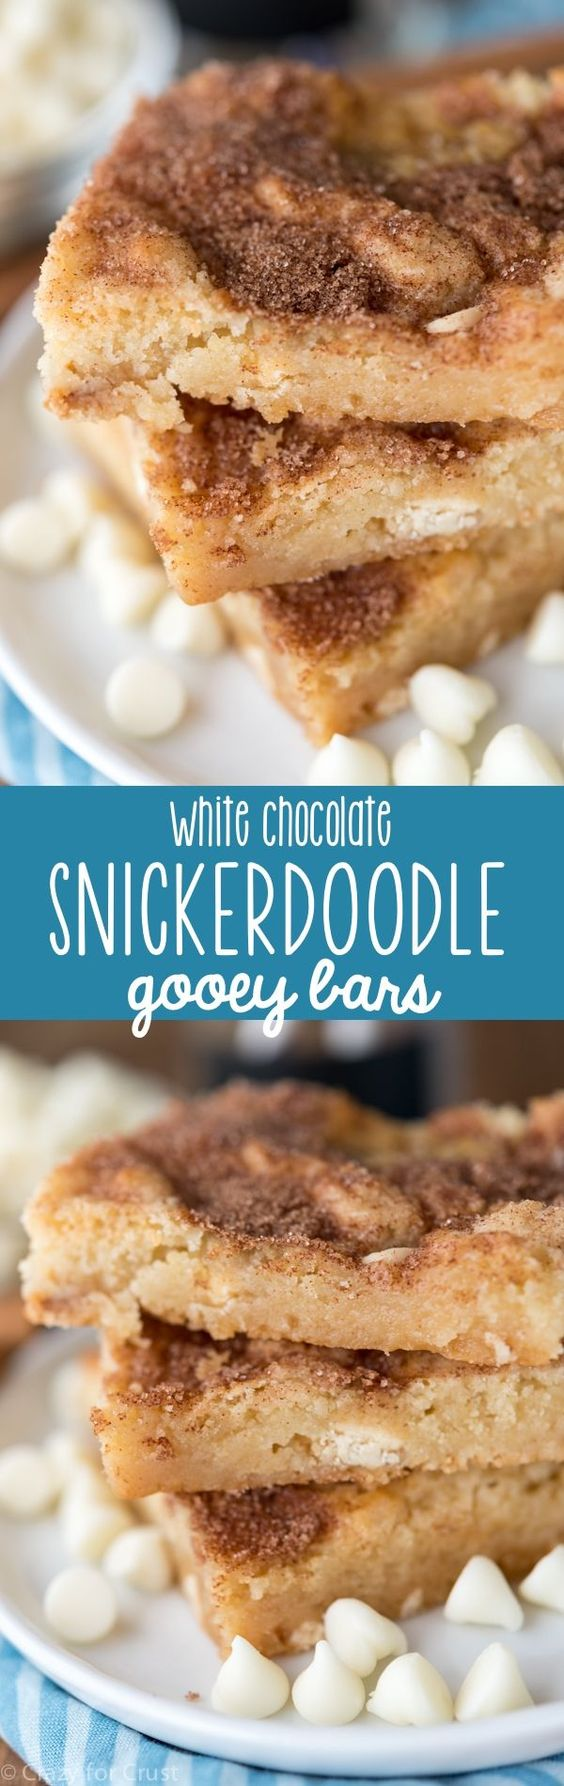 EASY White Chocolate Snickerdoodle Gooey Bars Dessert Recipe via Crazy for Crust - These EASY White Chocolate Snickerdoodle Gooey Bars are full of cinnamon sugar! Cookie bars are the best, and these are my favorite!